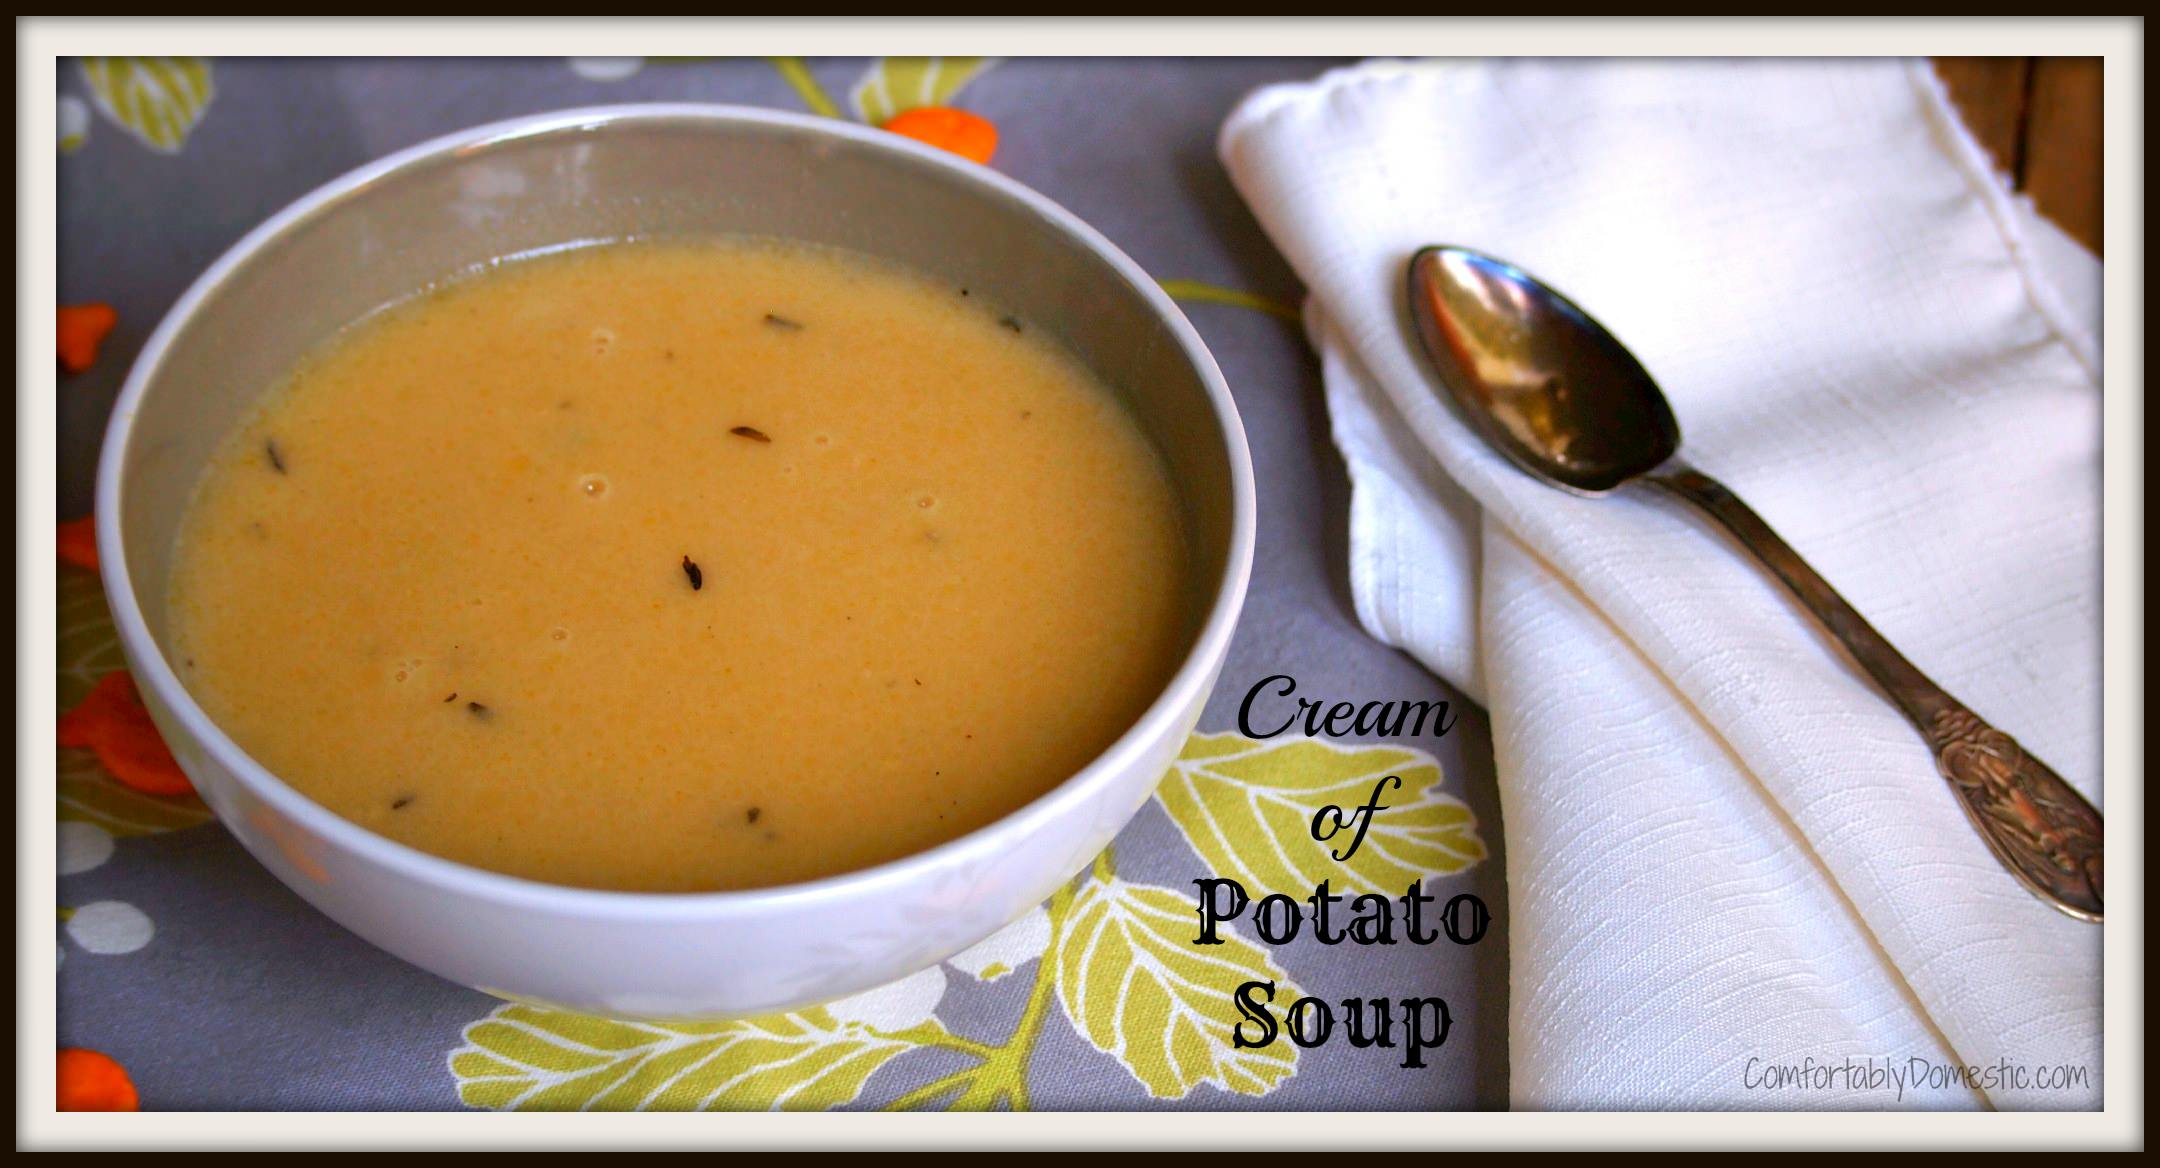 Cream of potato soup is a smooth, creamy potato soup with nice big chunks of potatoes. It's ready in about the time as it takes to prepare a canned soup, but tastes so much better.  | ComfortablyDomestic.com